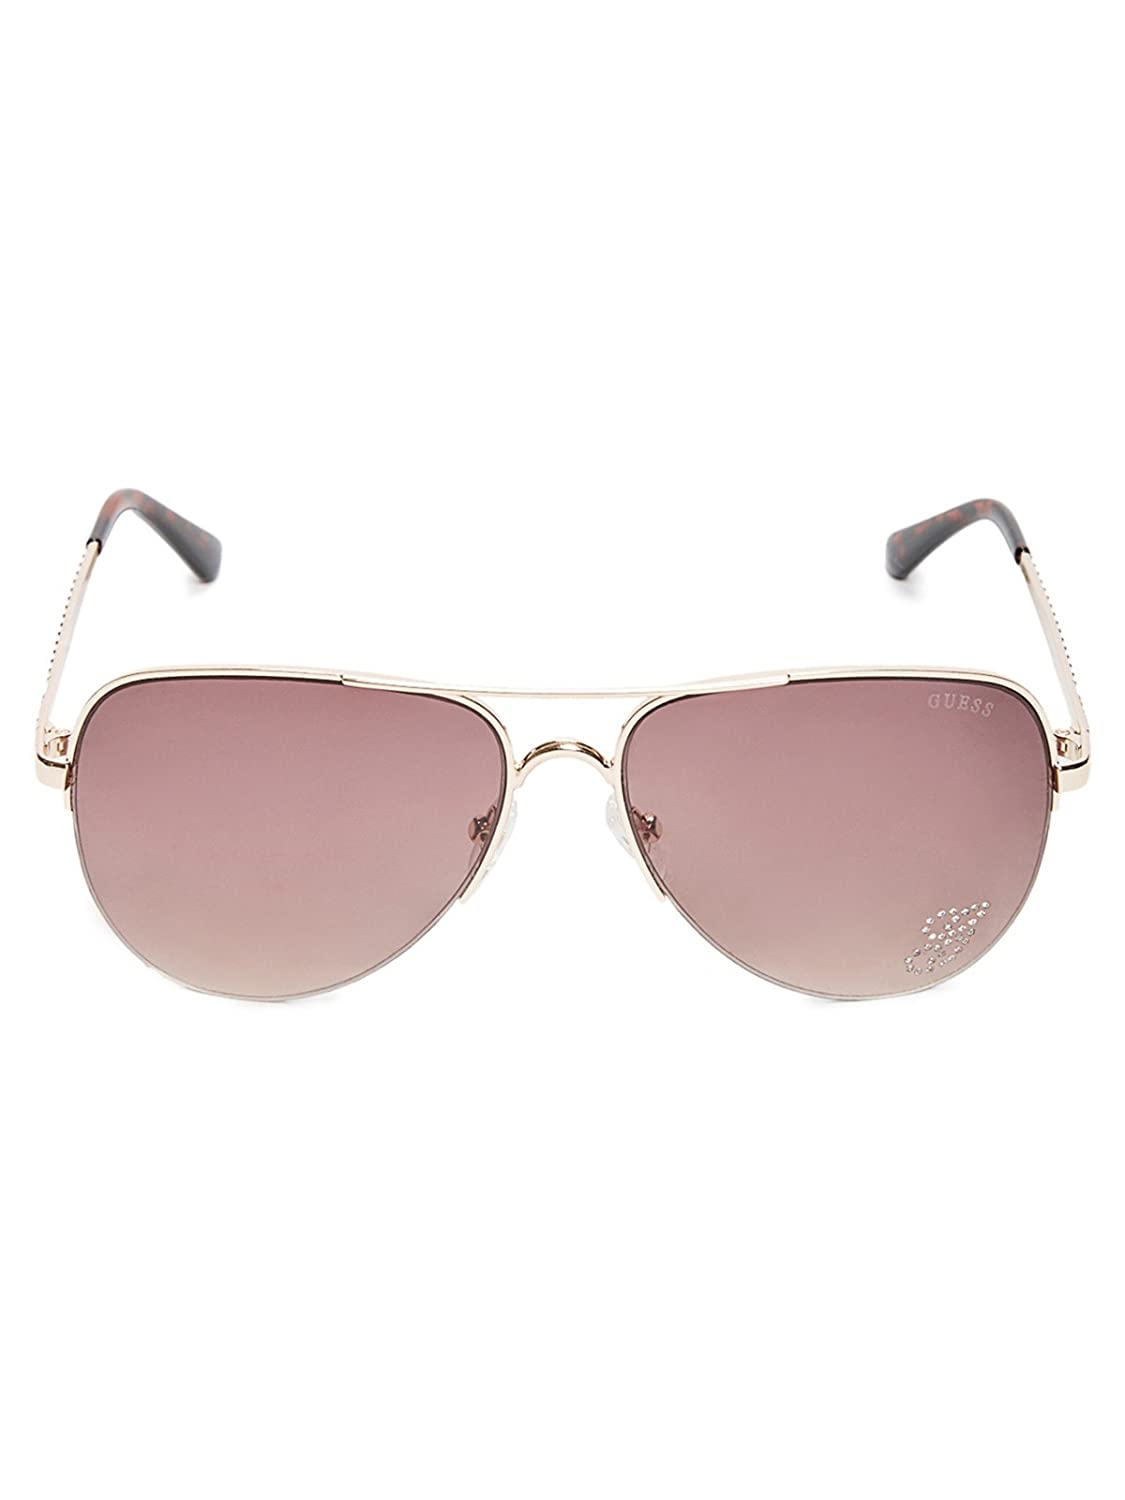 Amazon.com: GUESS Factory - Gafas de sol para mujer (metal ...